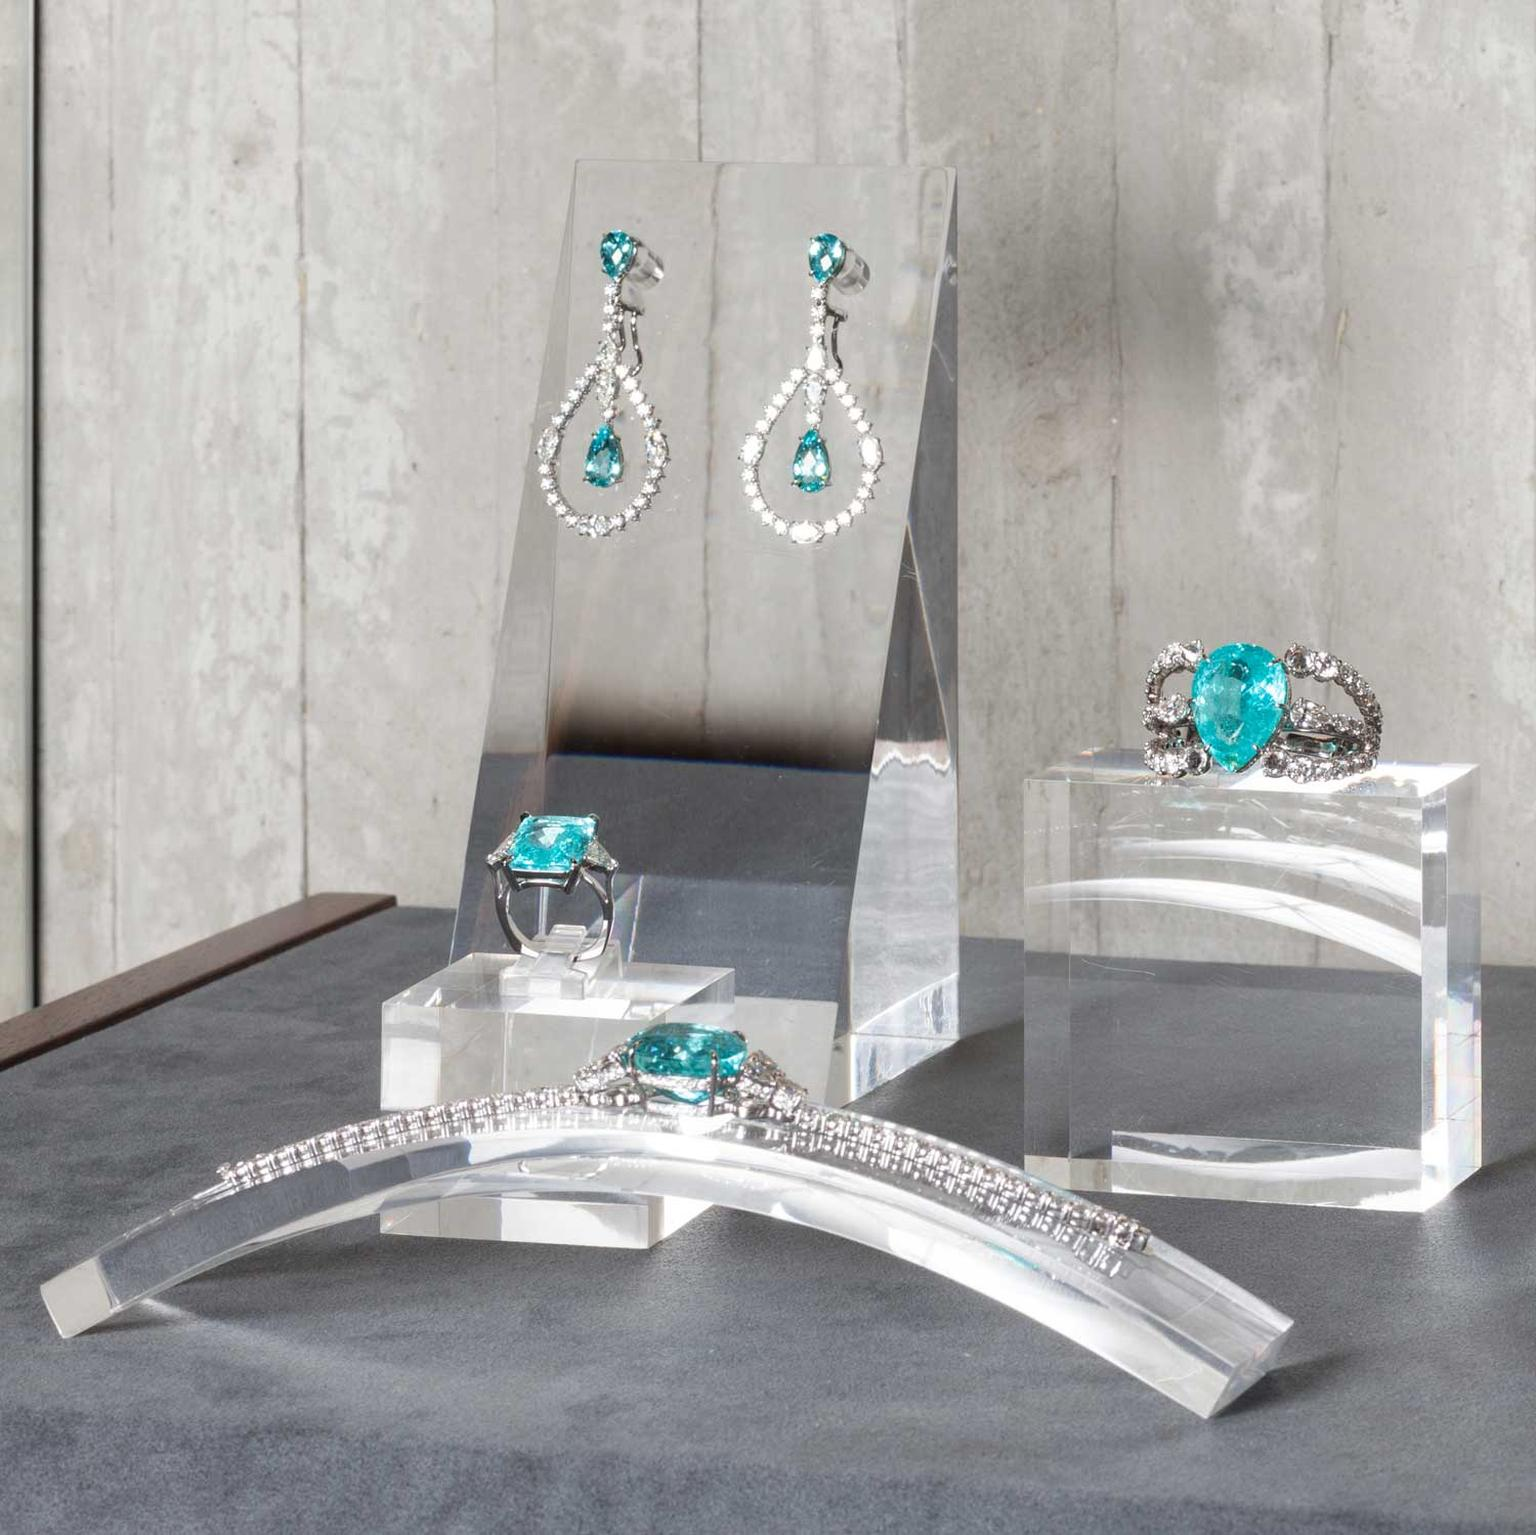 Ara Vartanian Paraiba tourmaline jewels on display in his London boutique